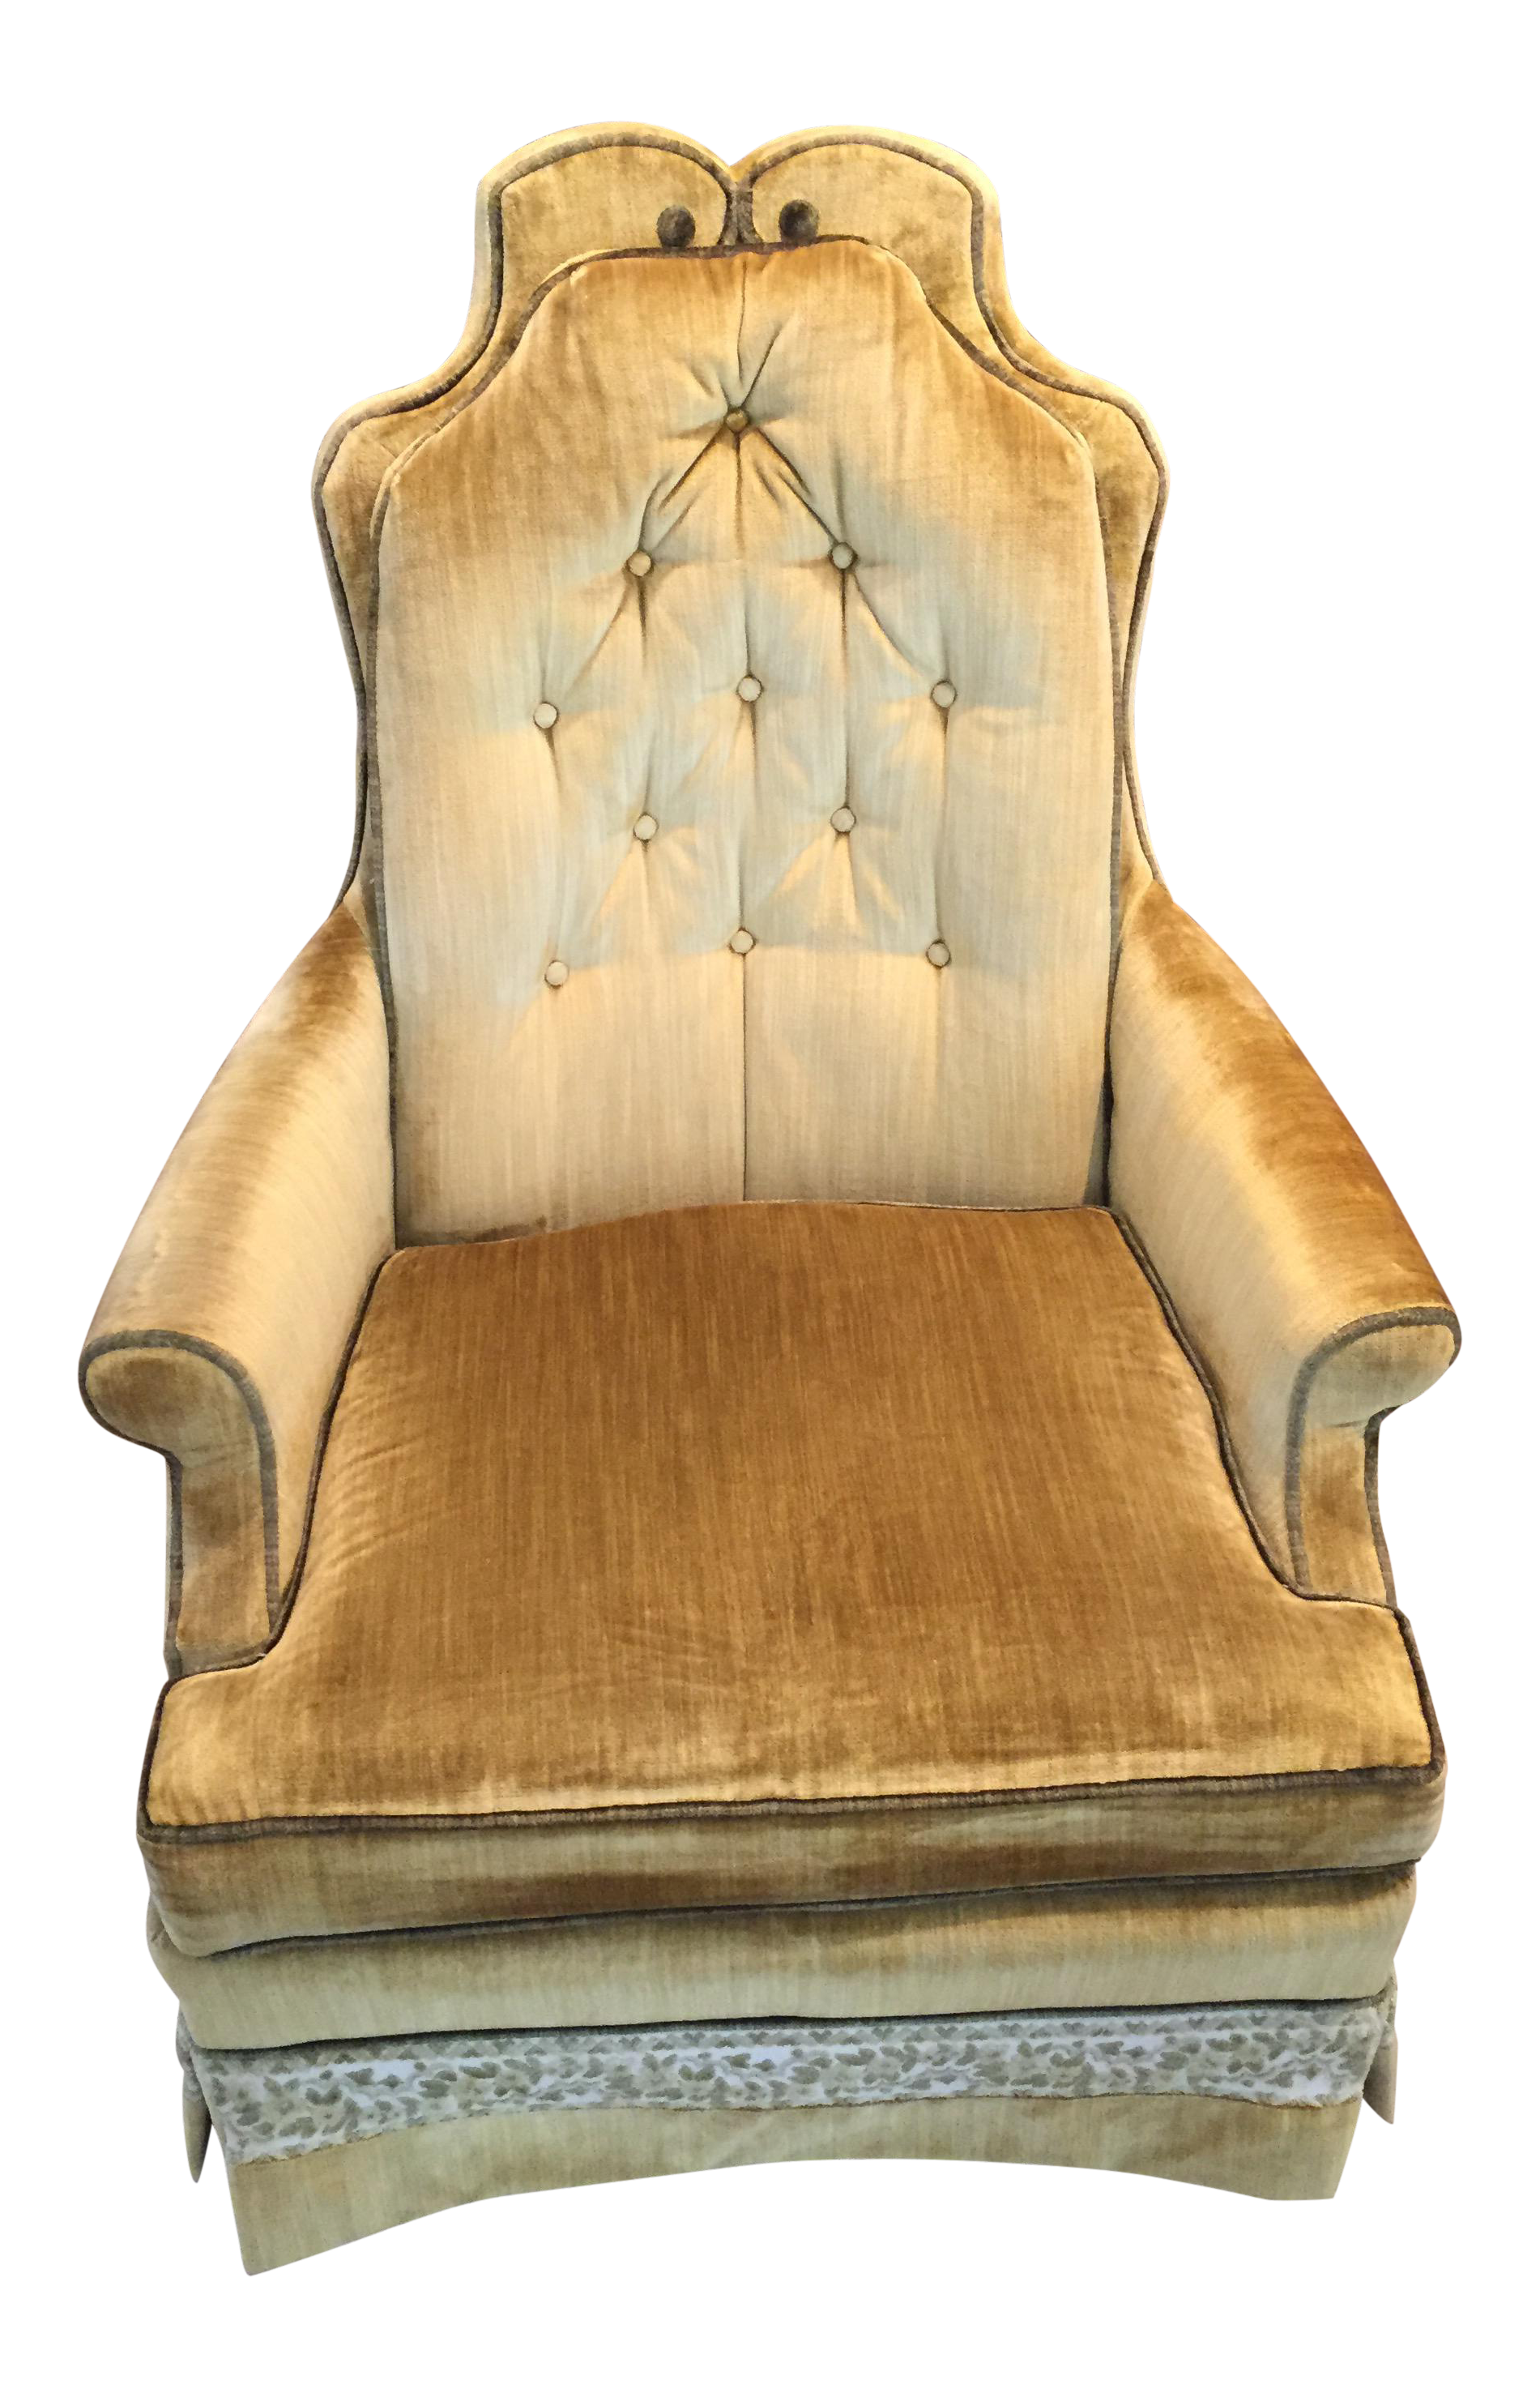 Hollywood Regency Muted Gold & Green Crushed Velvet Chair by